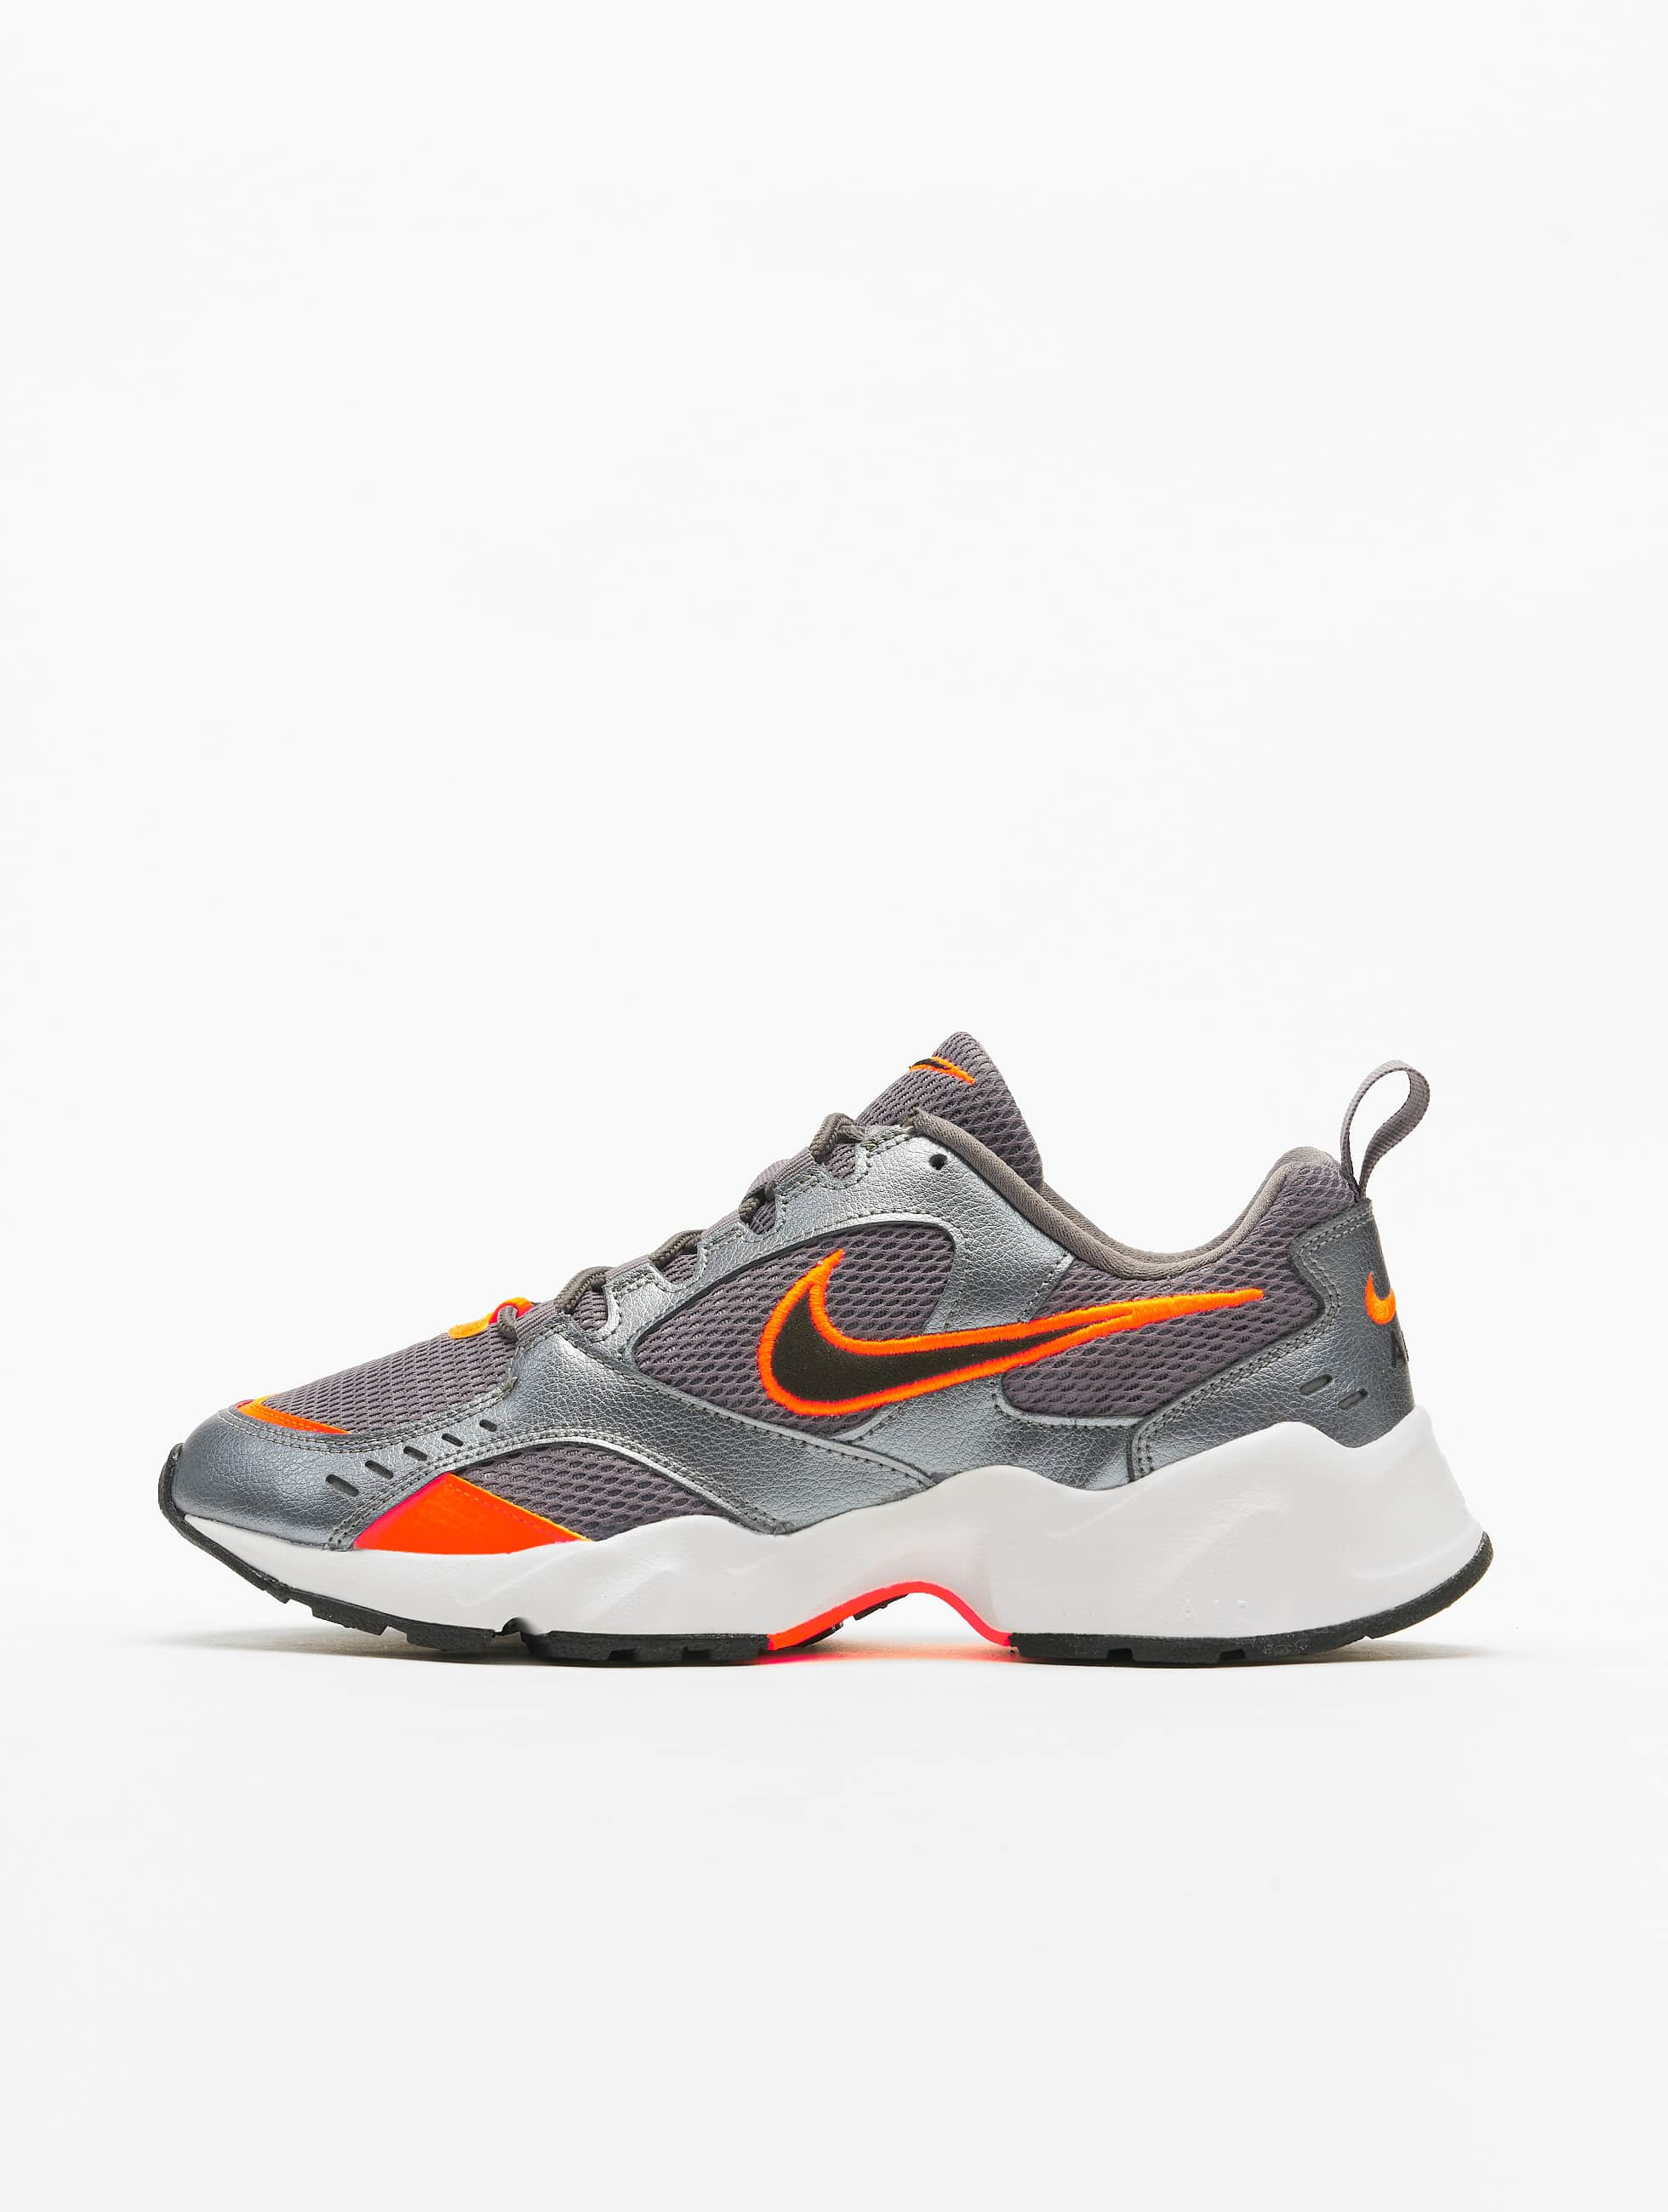 Nike Air Heights Sneakers GunsmokeBlackMtlc Cool Grey